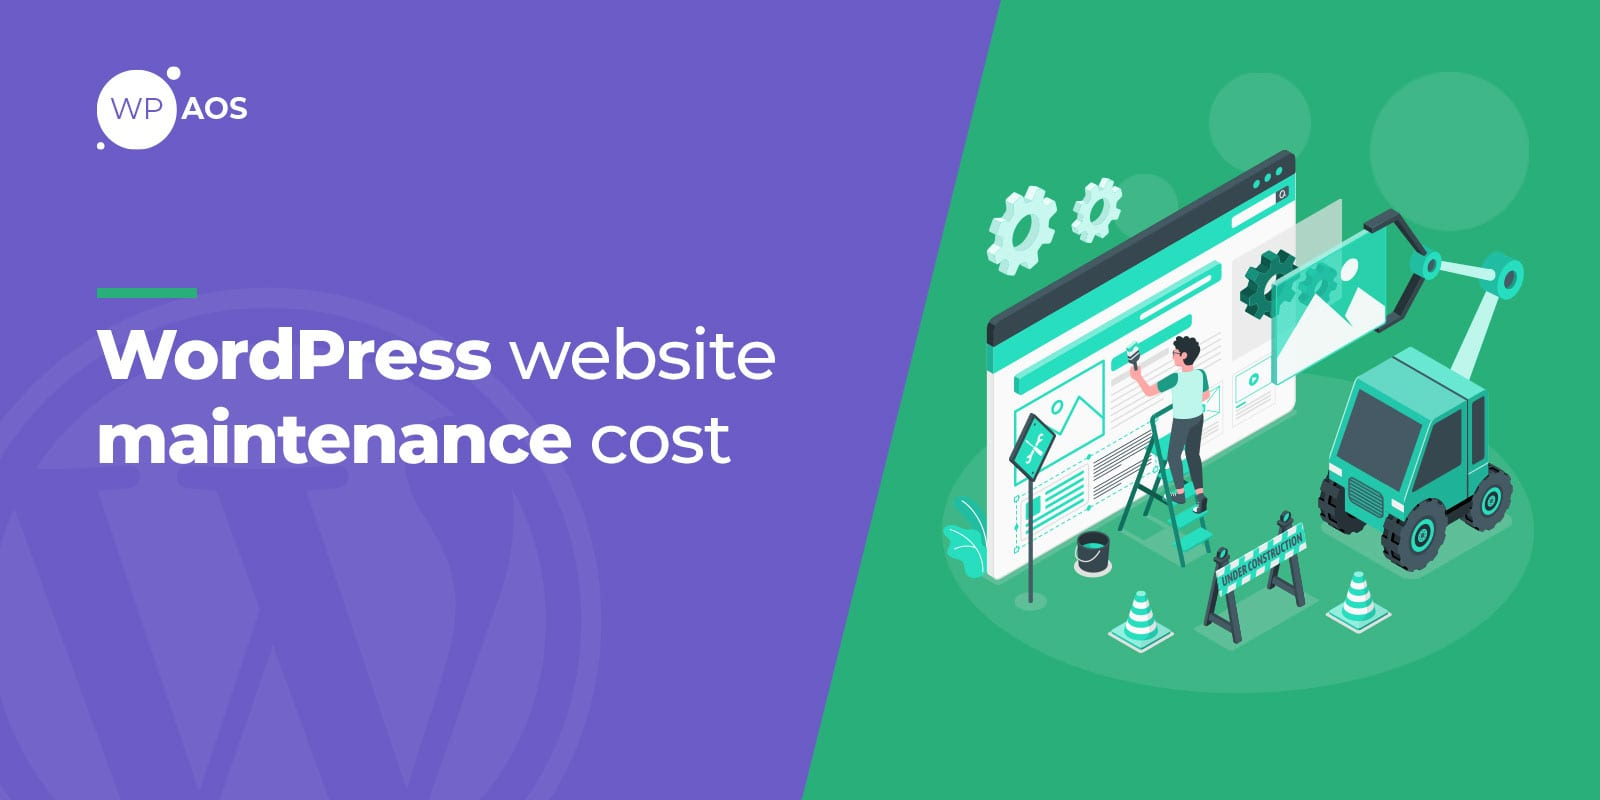 website maintenance, website care plan, wordpress support, woocommerce, wpaos